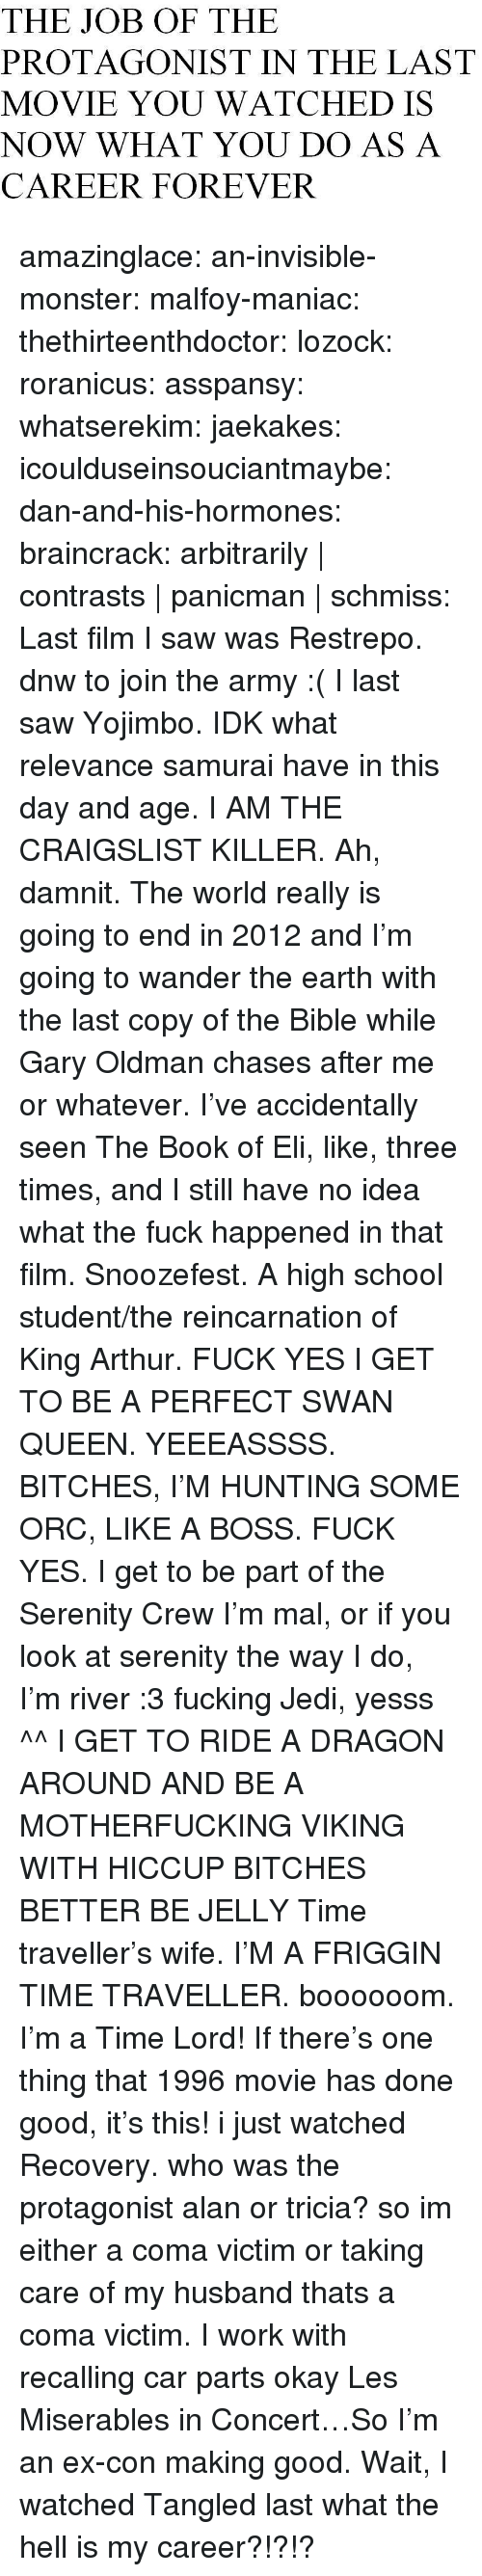 King Arthur: THE JOB OF THE  PROTAGONIST IN THE LAST  MOVIE YOU WATCHED IS  NOW WHAT YOU DO AS A  CAREER FOREVER amazinglace:  an-invisible-monster:  malfoy-maniac:  thethirteenthdoctor:  lozock:  roranicus:  asspansy:  whatserekim:  jaekakes:  icoulduseinsouciantmaybe:  dan-and-his-hormones:  braincrack:  arbitrarily   contrasts panicman   schmiss:     Last film I saw was Restrepo. dnw to join the army :(  I last saw Yojimbo. IDK what relevance samurai have in this day and age.  I AM THE CRAIGSLIST KILLER.  Ah, damnit. The world really is going to end in 2012 and I'm going to wander the earth with the last copy of the Bible while Gary Oldman chases after me or whatever. I've accidentally seen The Book of Eli, like, three times, and I still have no idea what the fuck happened in that film. Snoozefest.  A high school student/the reincarnation of King Arthur.  FUCK YES I GET TO BE A PERFECT SWAN QUEEN. YEEEASSSS.  BITCHES, I'M HUNTING SOME ORC, LIKE A BOSS.  FUCK YES. I get to be part of the Serenity Crew  I'm mal, or if you look at serenity the way I do, I'm river :3  fucking Jedi, yesss ^^  I GET TO RIDE A DRAGON AROUND AND BE A MOTHERFUCKING VIKING WITH HICCUP BITCHES BETTER BE JELLY  Time traveller's wife. I'M A FRIGGIN TIME TRAVELLER. boooooom.  I'm a Time Lord! If there's one thing that 1996 movie has done good, it's this!  i just watched Recovery. who was the protagonist alan or tricia? so im either a coma victim or taking care of my husband thats a coma victim.  I work with recalling car parts okay  Les Miserables in Concert…So I'm an ex-con making good.  Wait, I watched Tangled last what the hell is my career?!?!?